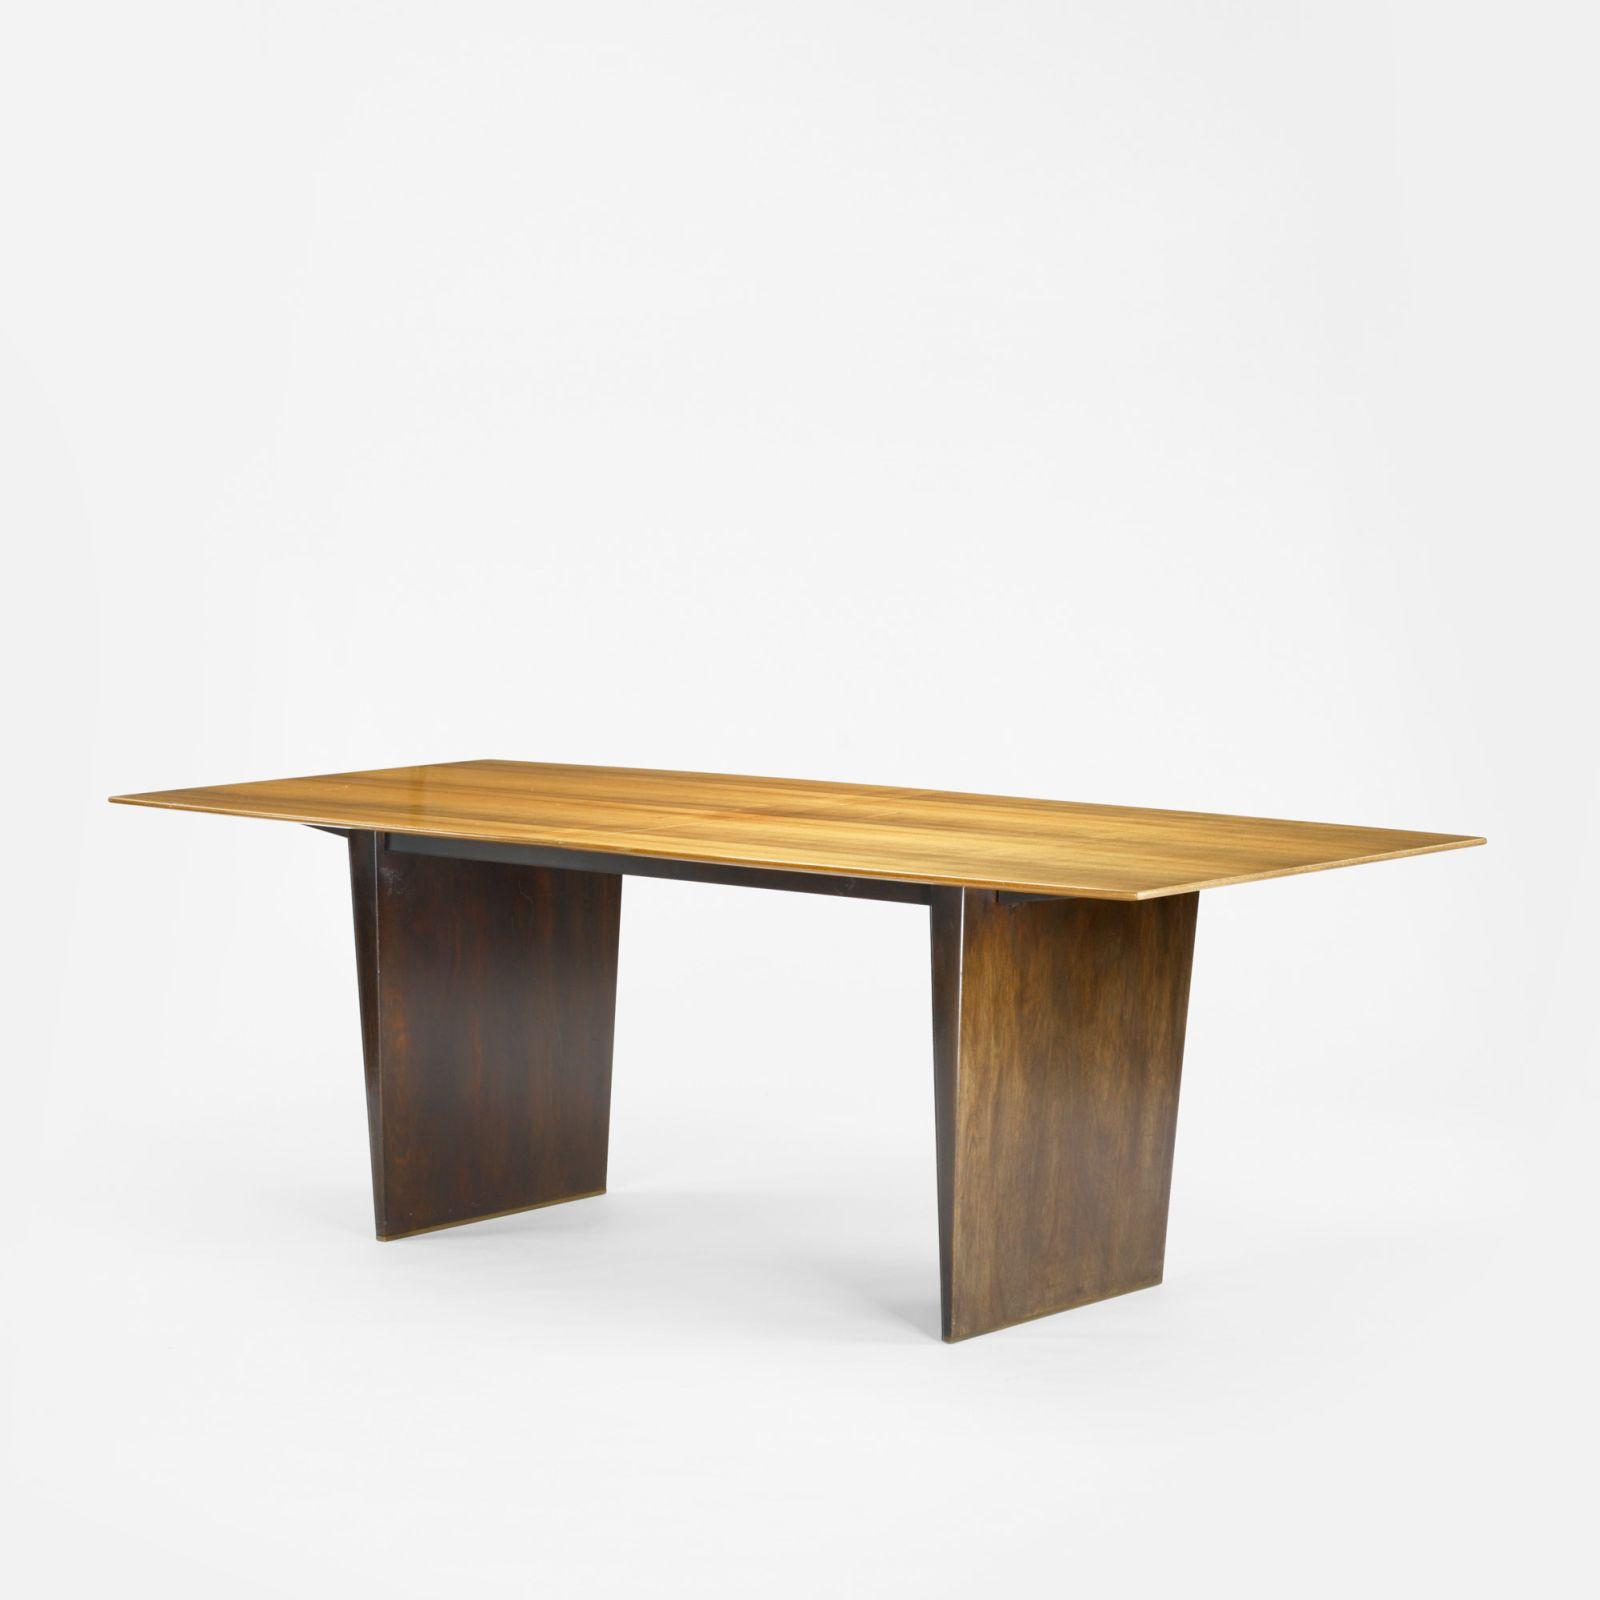 Edward wormley extension dining table model 5460 - Extension dining tables small spaces model ...